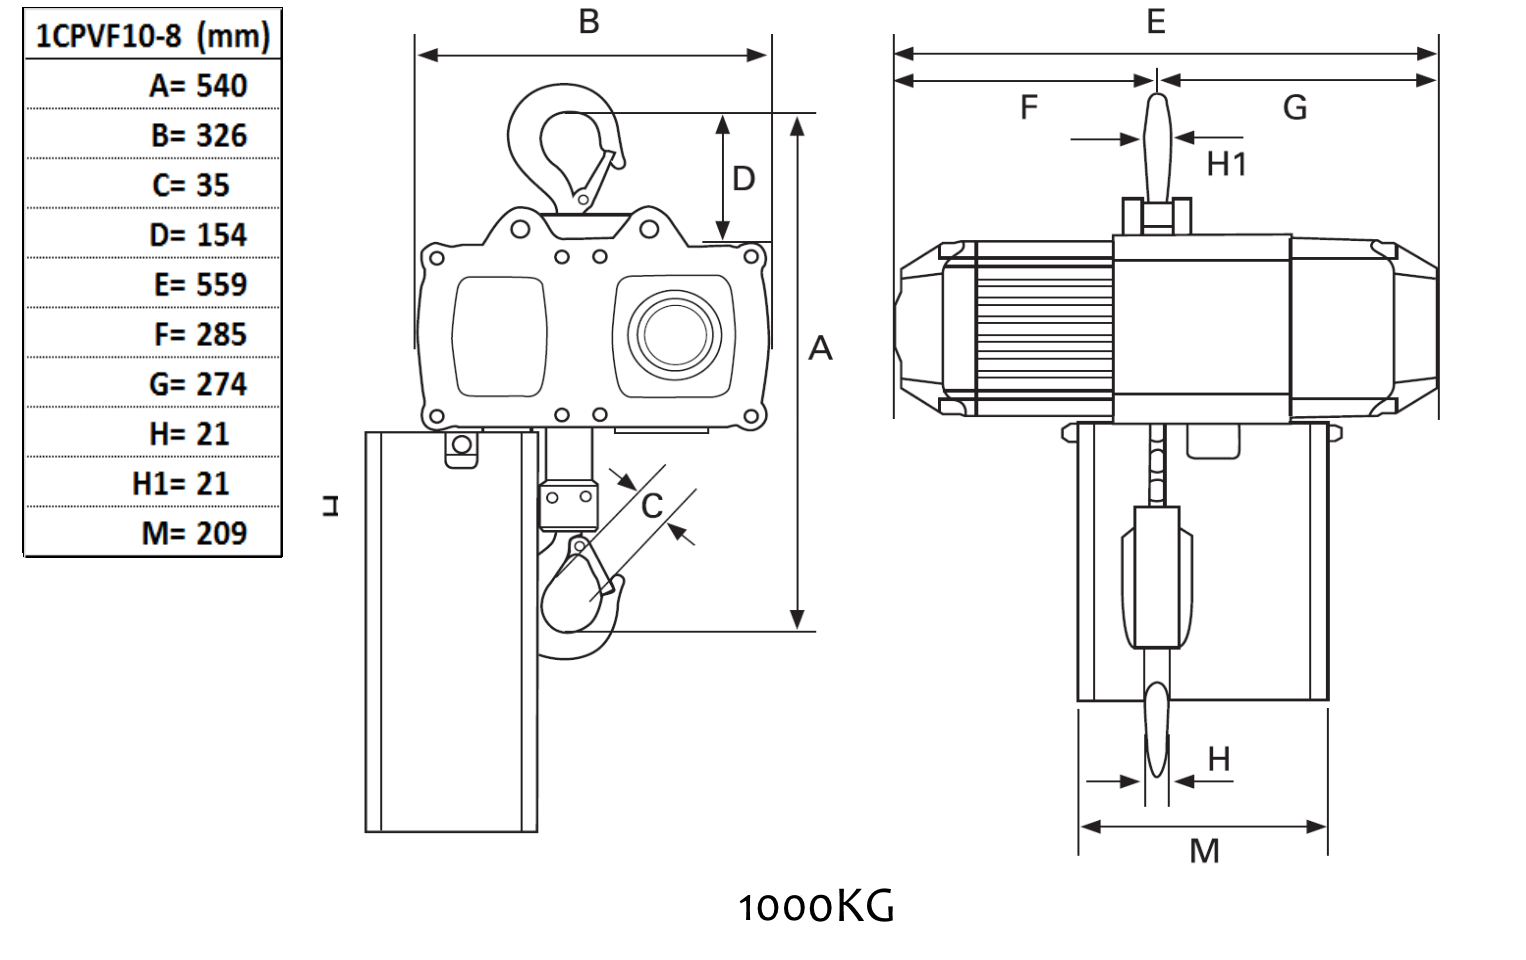 electrical chain hoist 1000kg, 8 2m min 1 p, yale lift station wiring diagrams cm hoist wiring diagrams model h #27